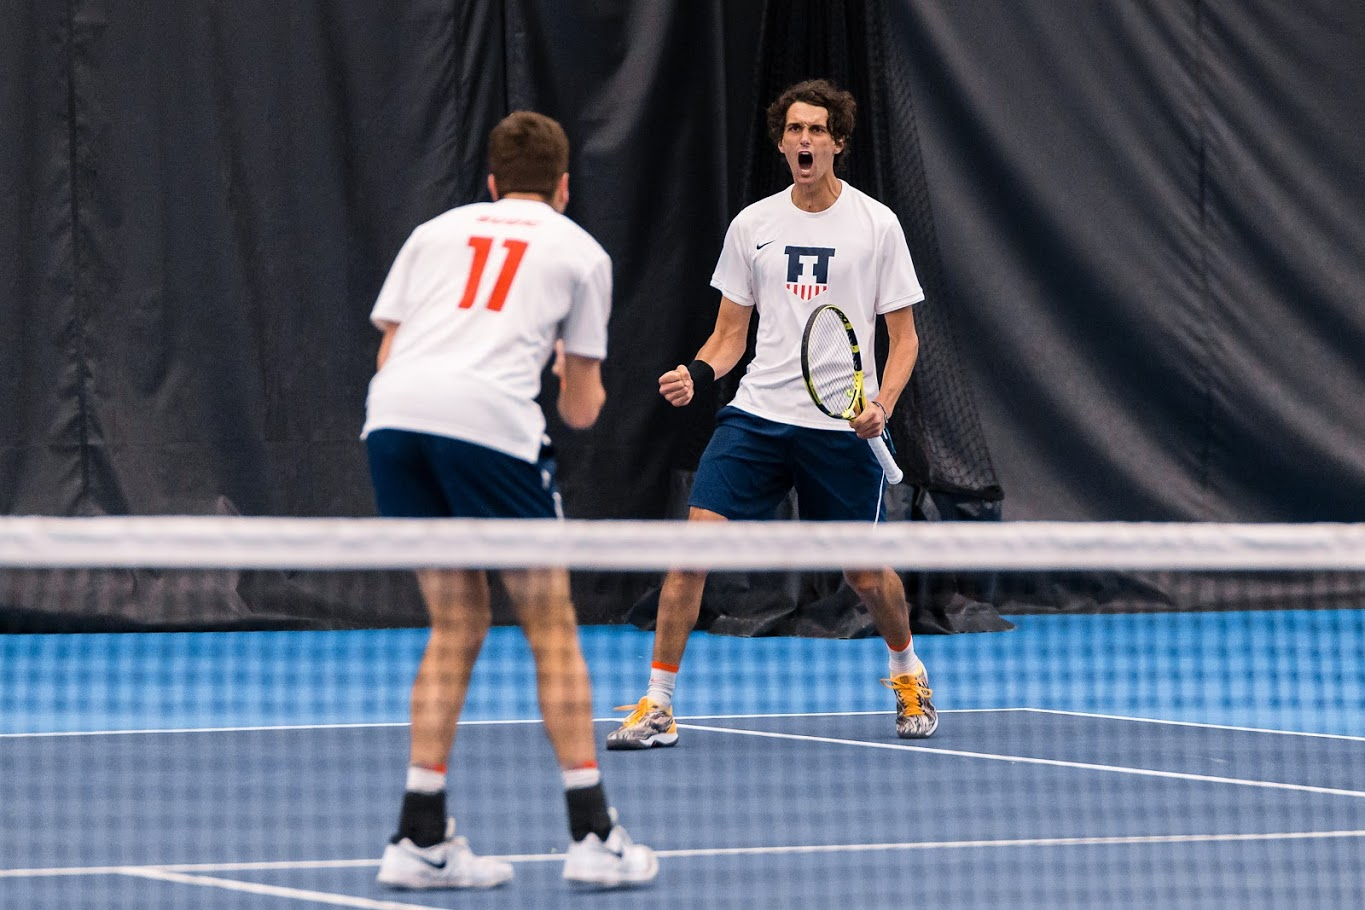 Junior Gui Gomes celebrates with doubles partner senior Vuk Budic. Gomes finished 2-2 in his singles season debut at the Southern Intercollegiate Championships.